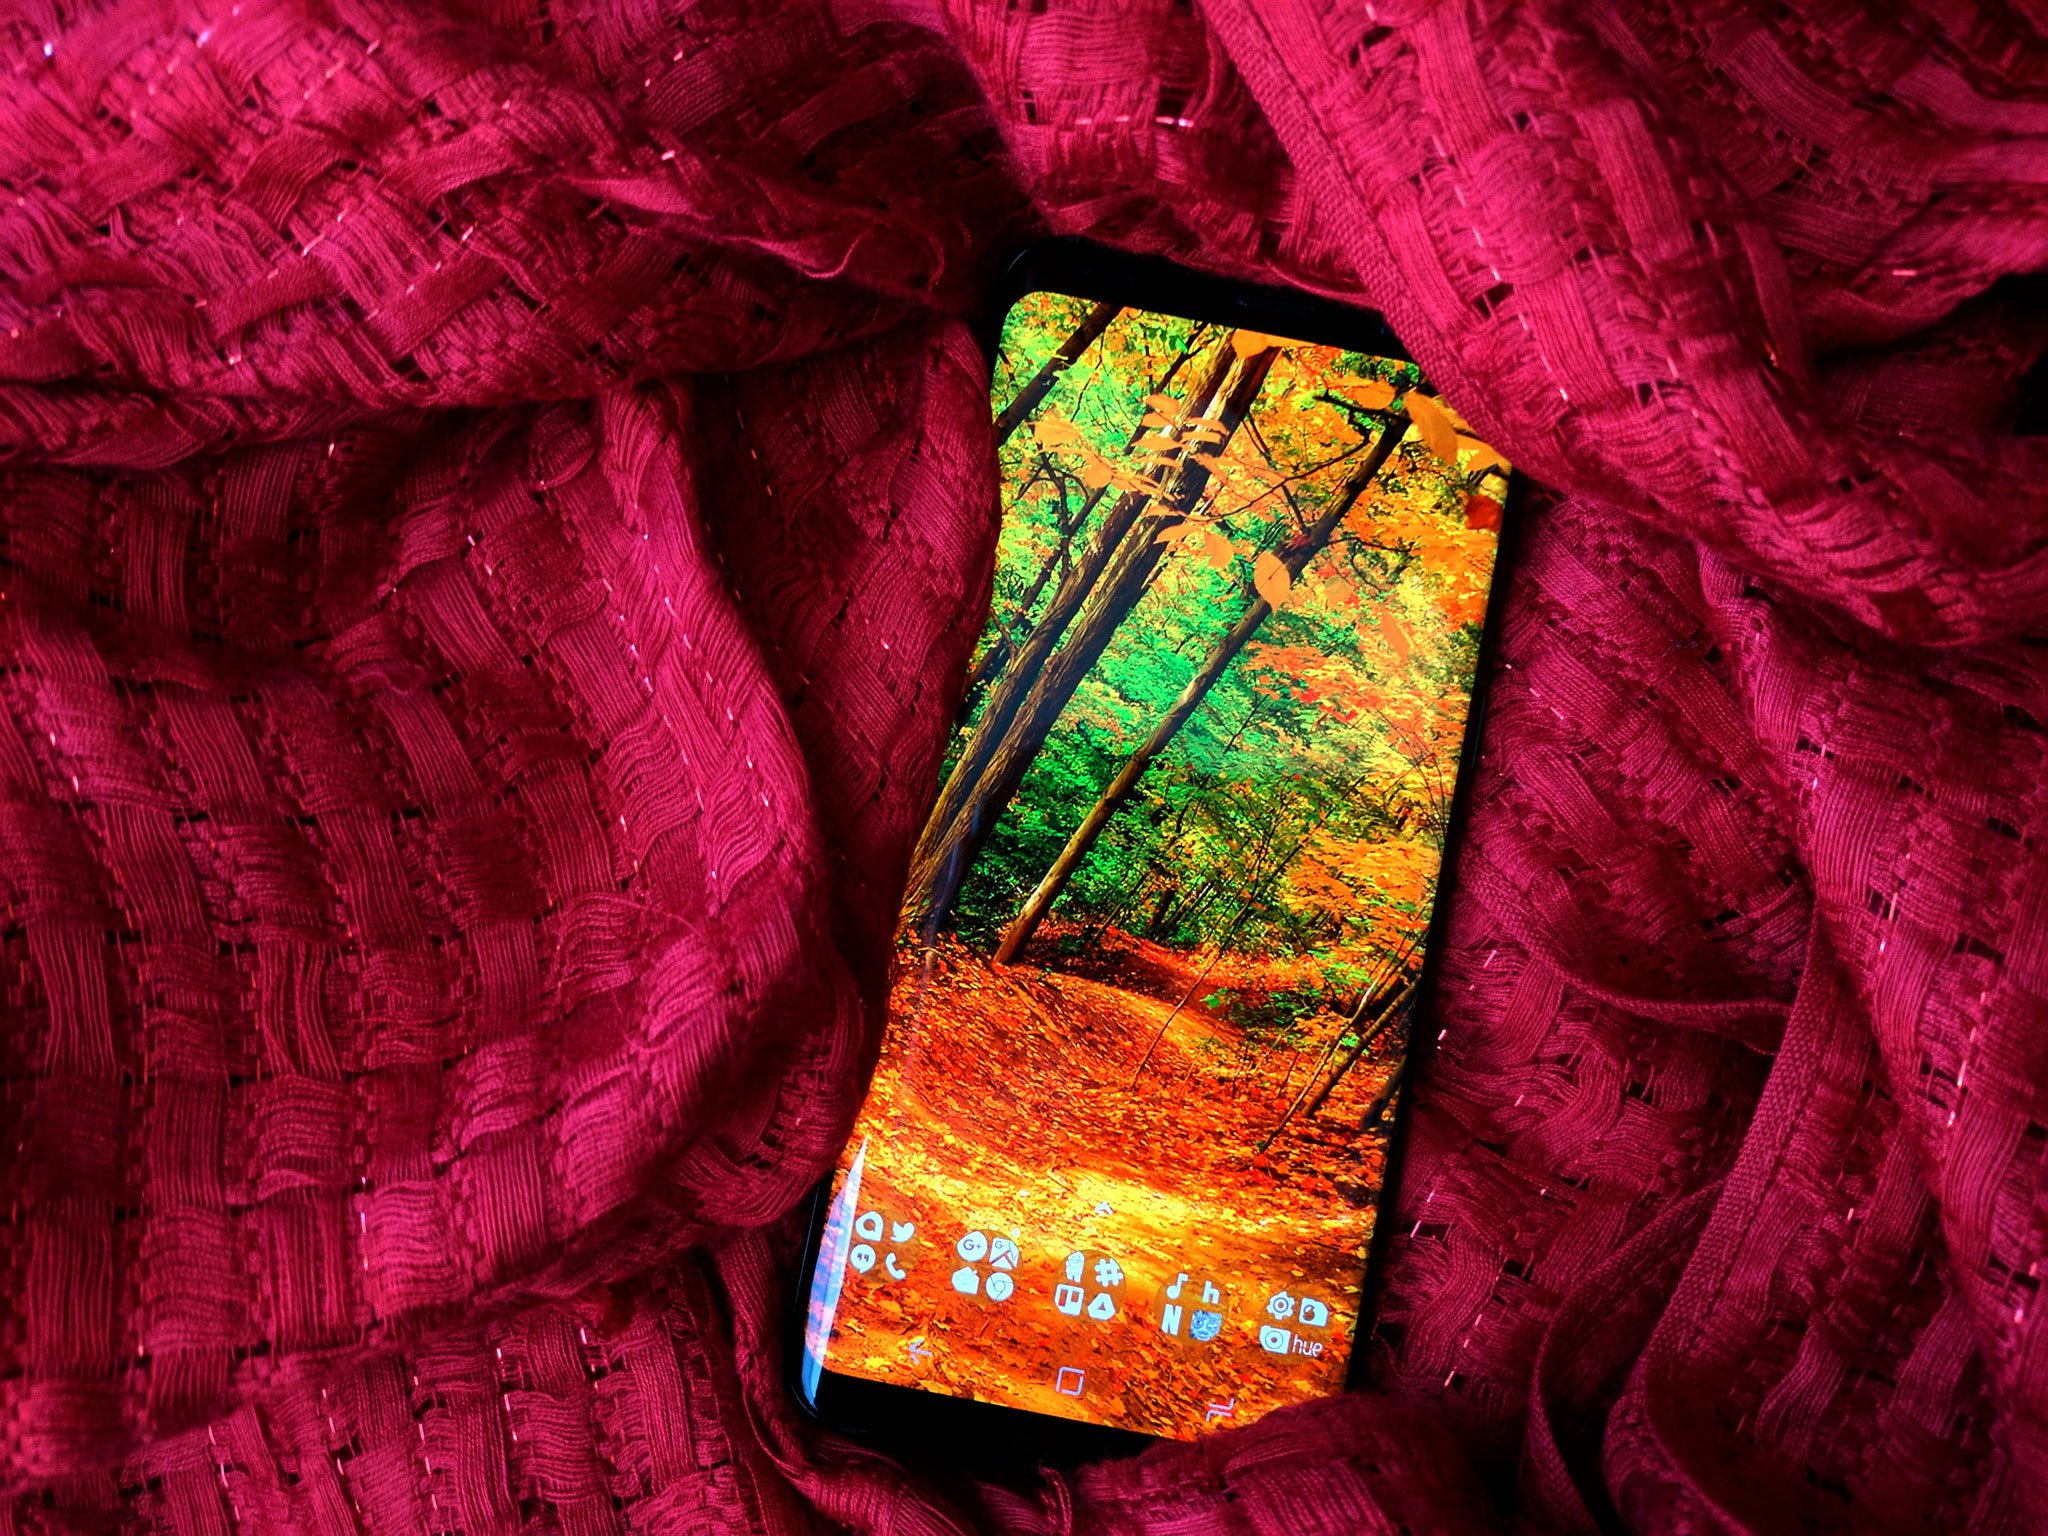 Falling Leaves Wallpaper Blackberry Fall Into Autumn With A New Leafy Wallpaper Android Central